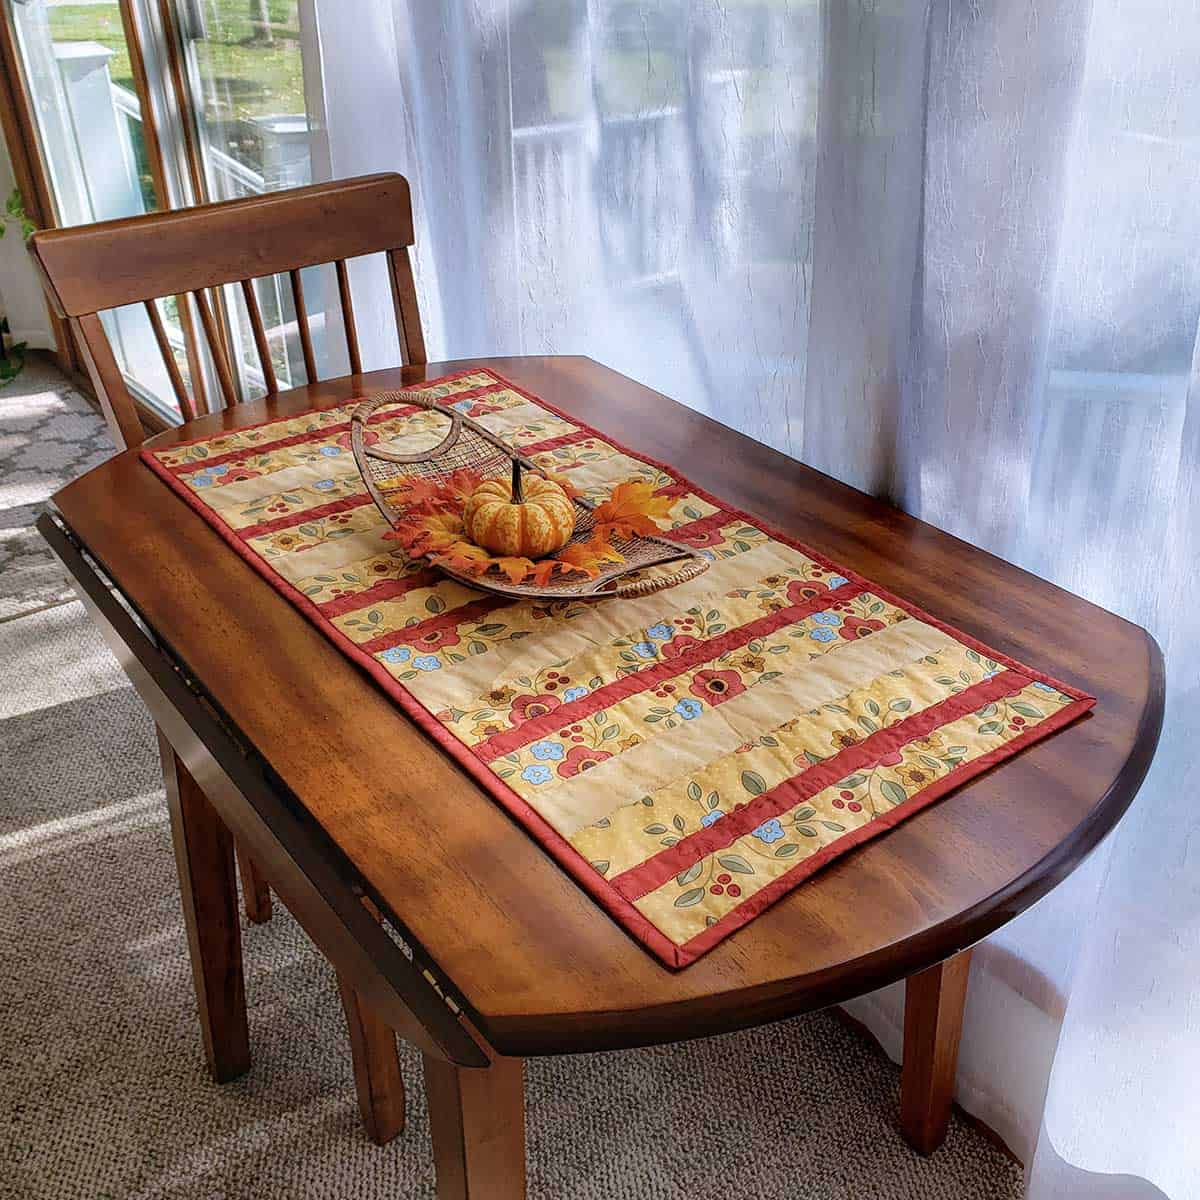 Easy quilted yellow striped table runner on table